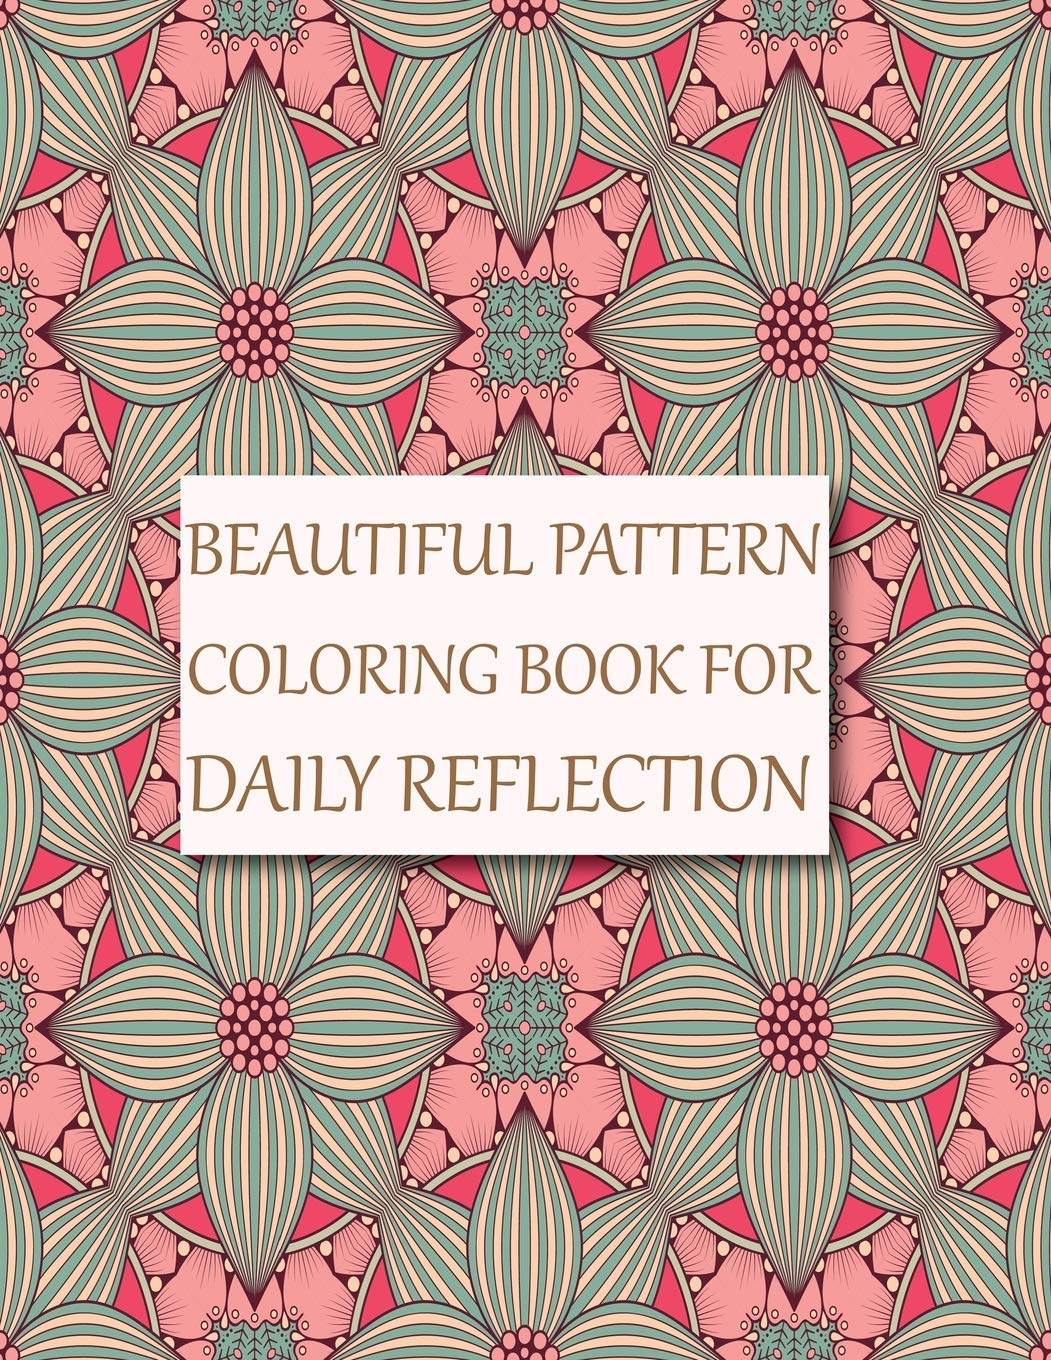 Free Printable Mandala Design Coloring Pages - Get Coloring Pages | 1360x1051